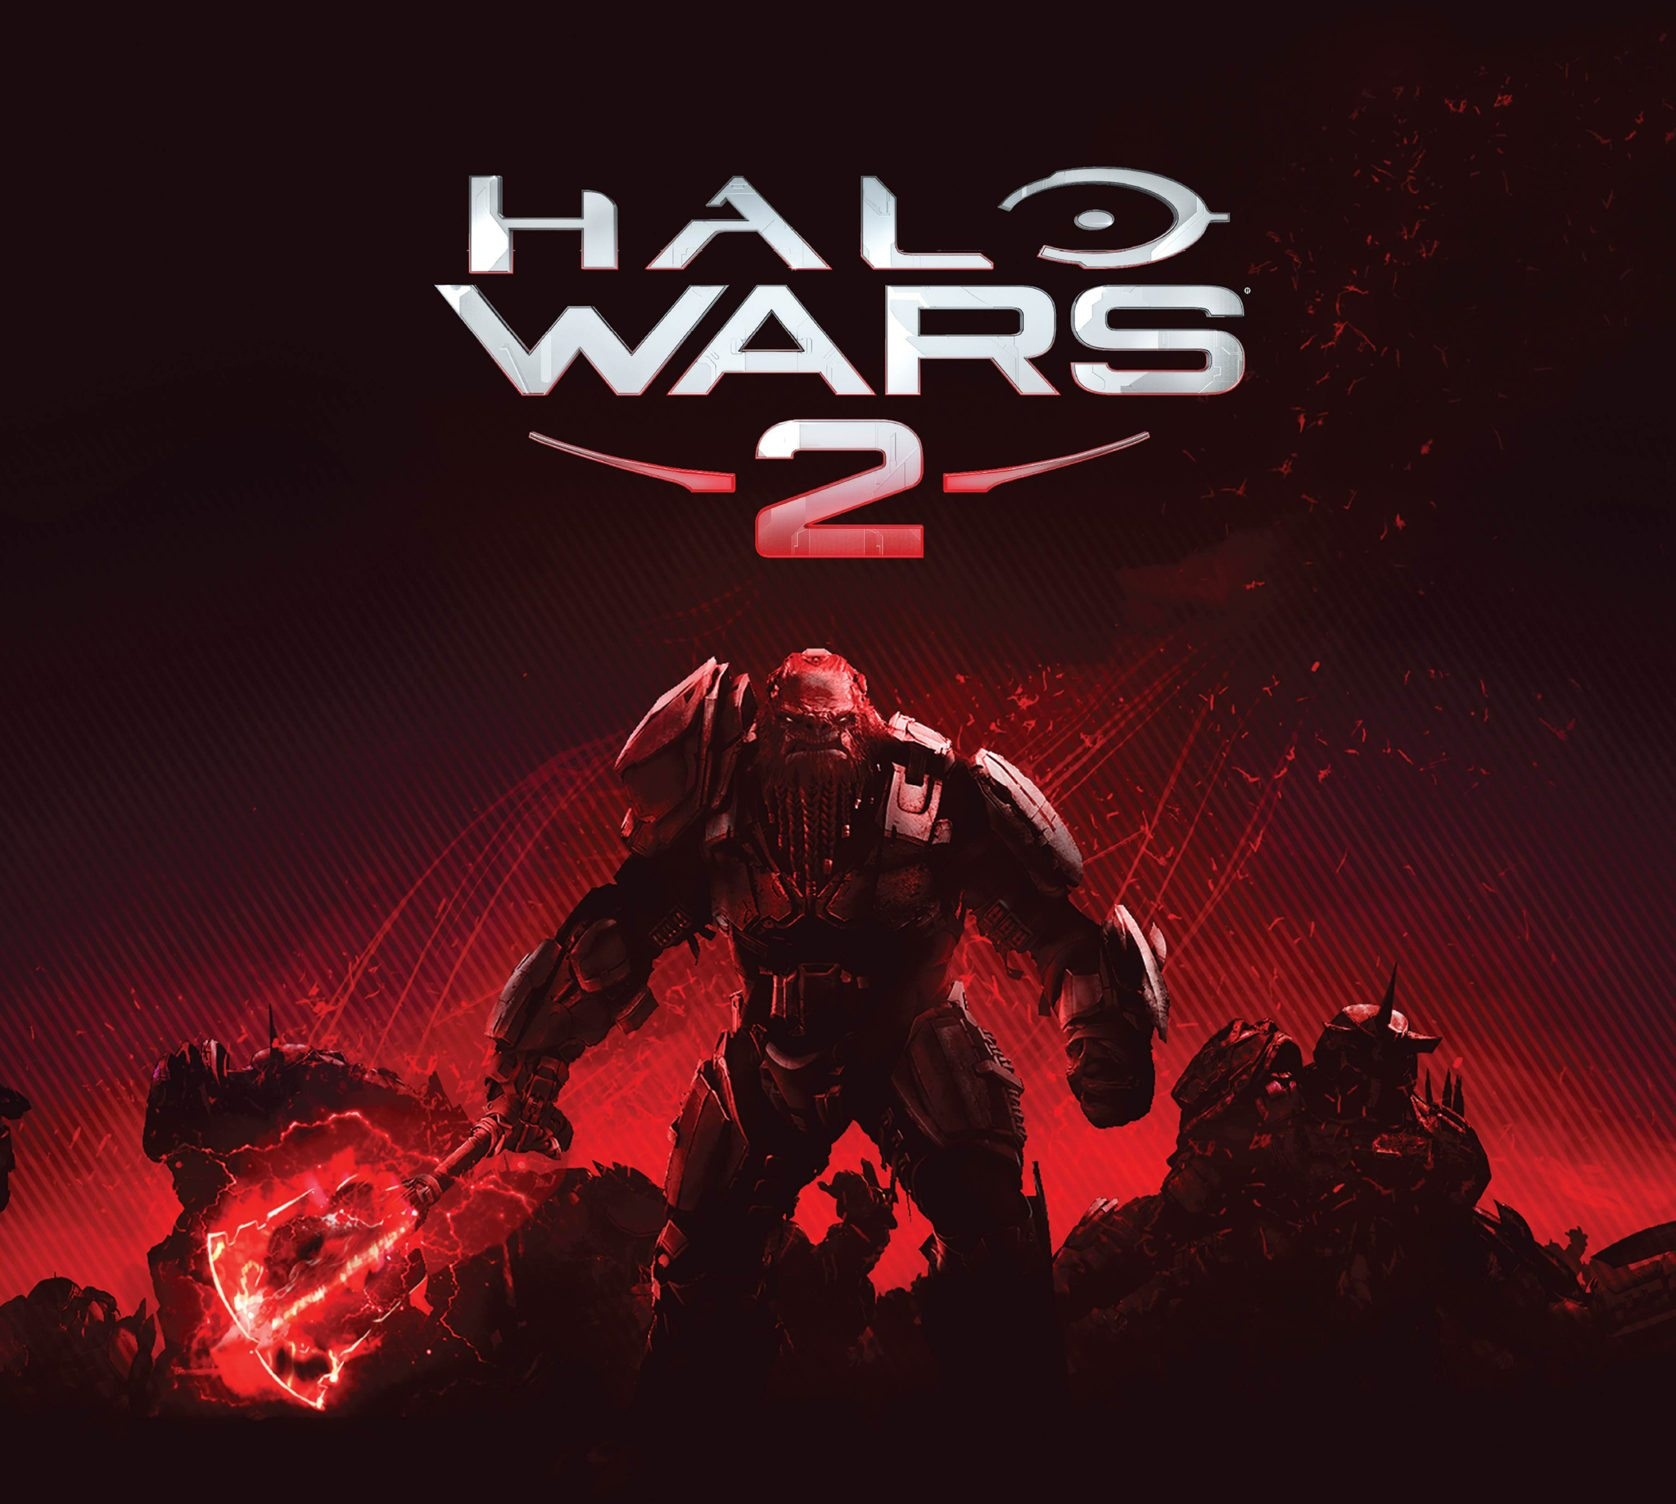 Halo Wars 2 Cracked 1130815 Download Full PC Game Highly Compressed [2021]